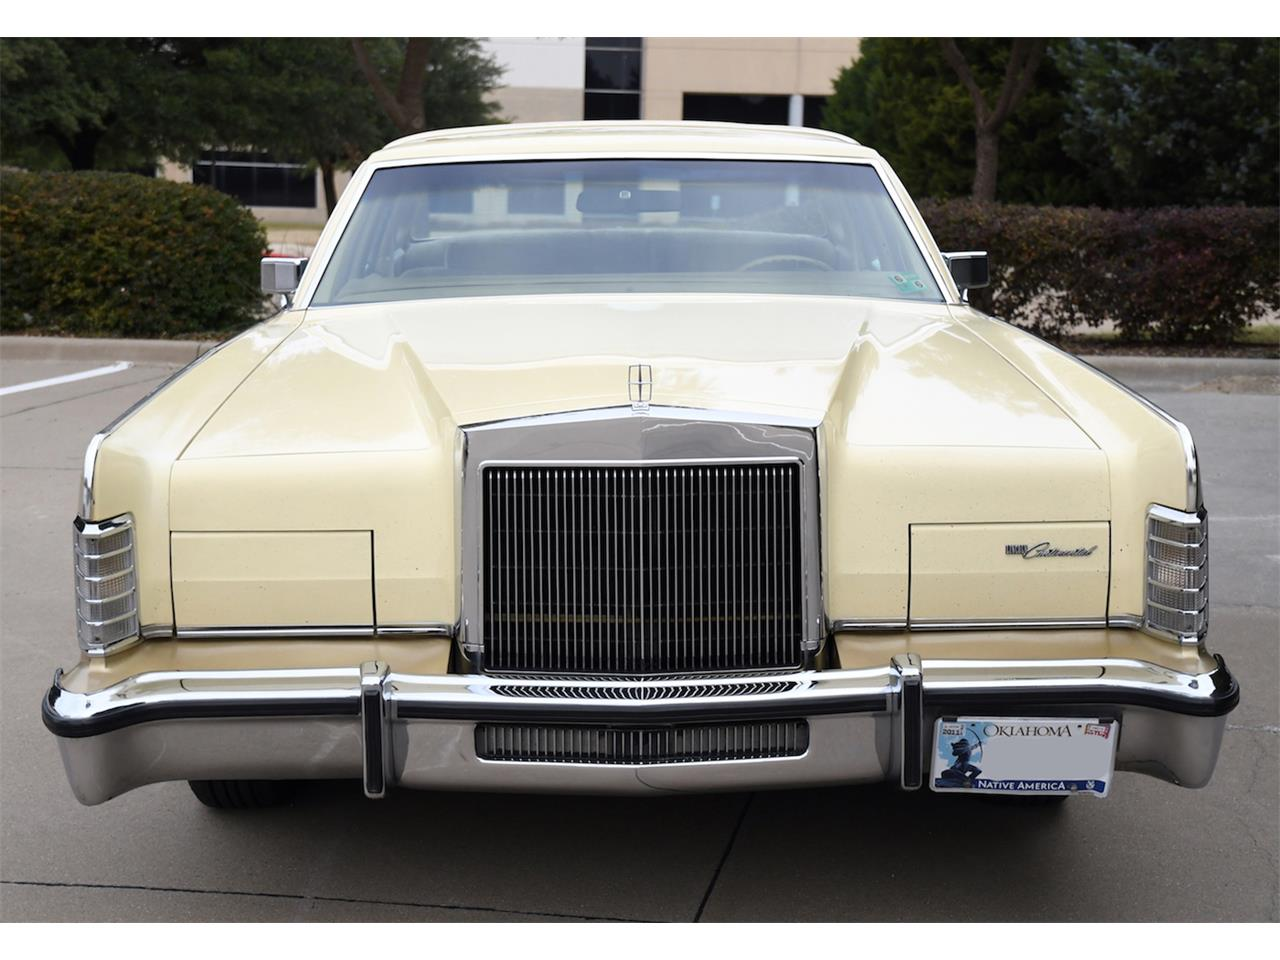 Large Picture of '79 Lincoln Continental located in Allen Texas Auction Vehicle - P157